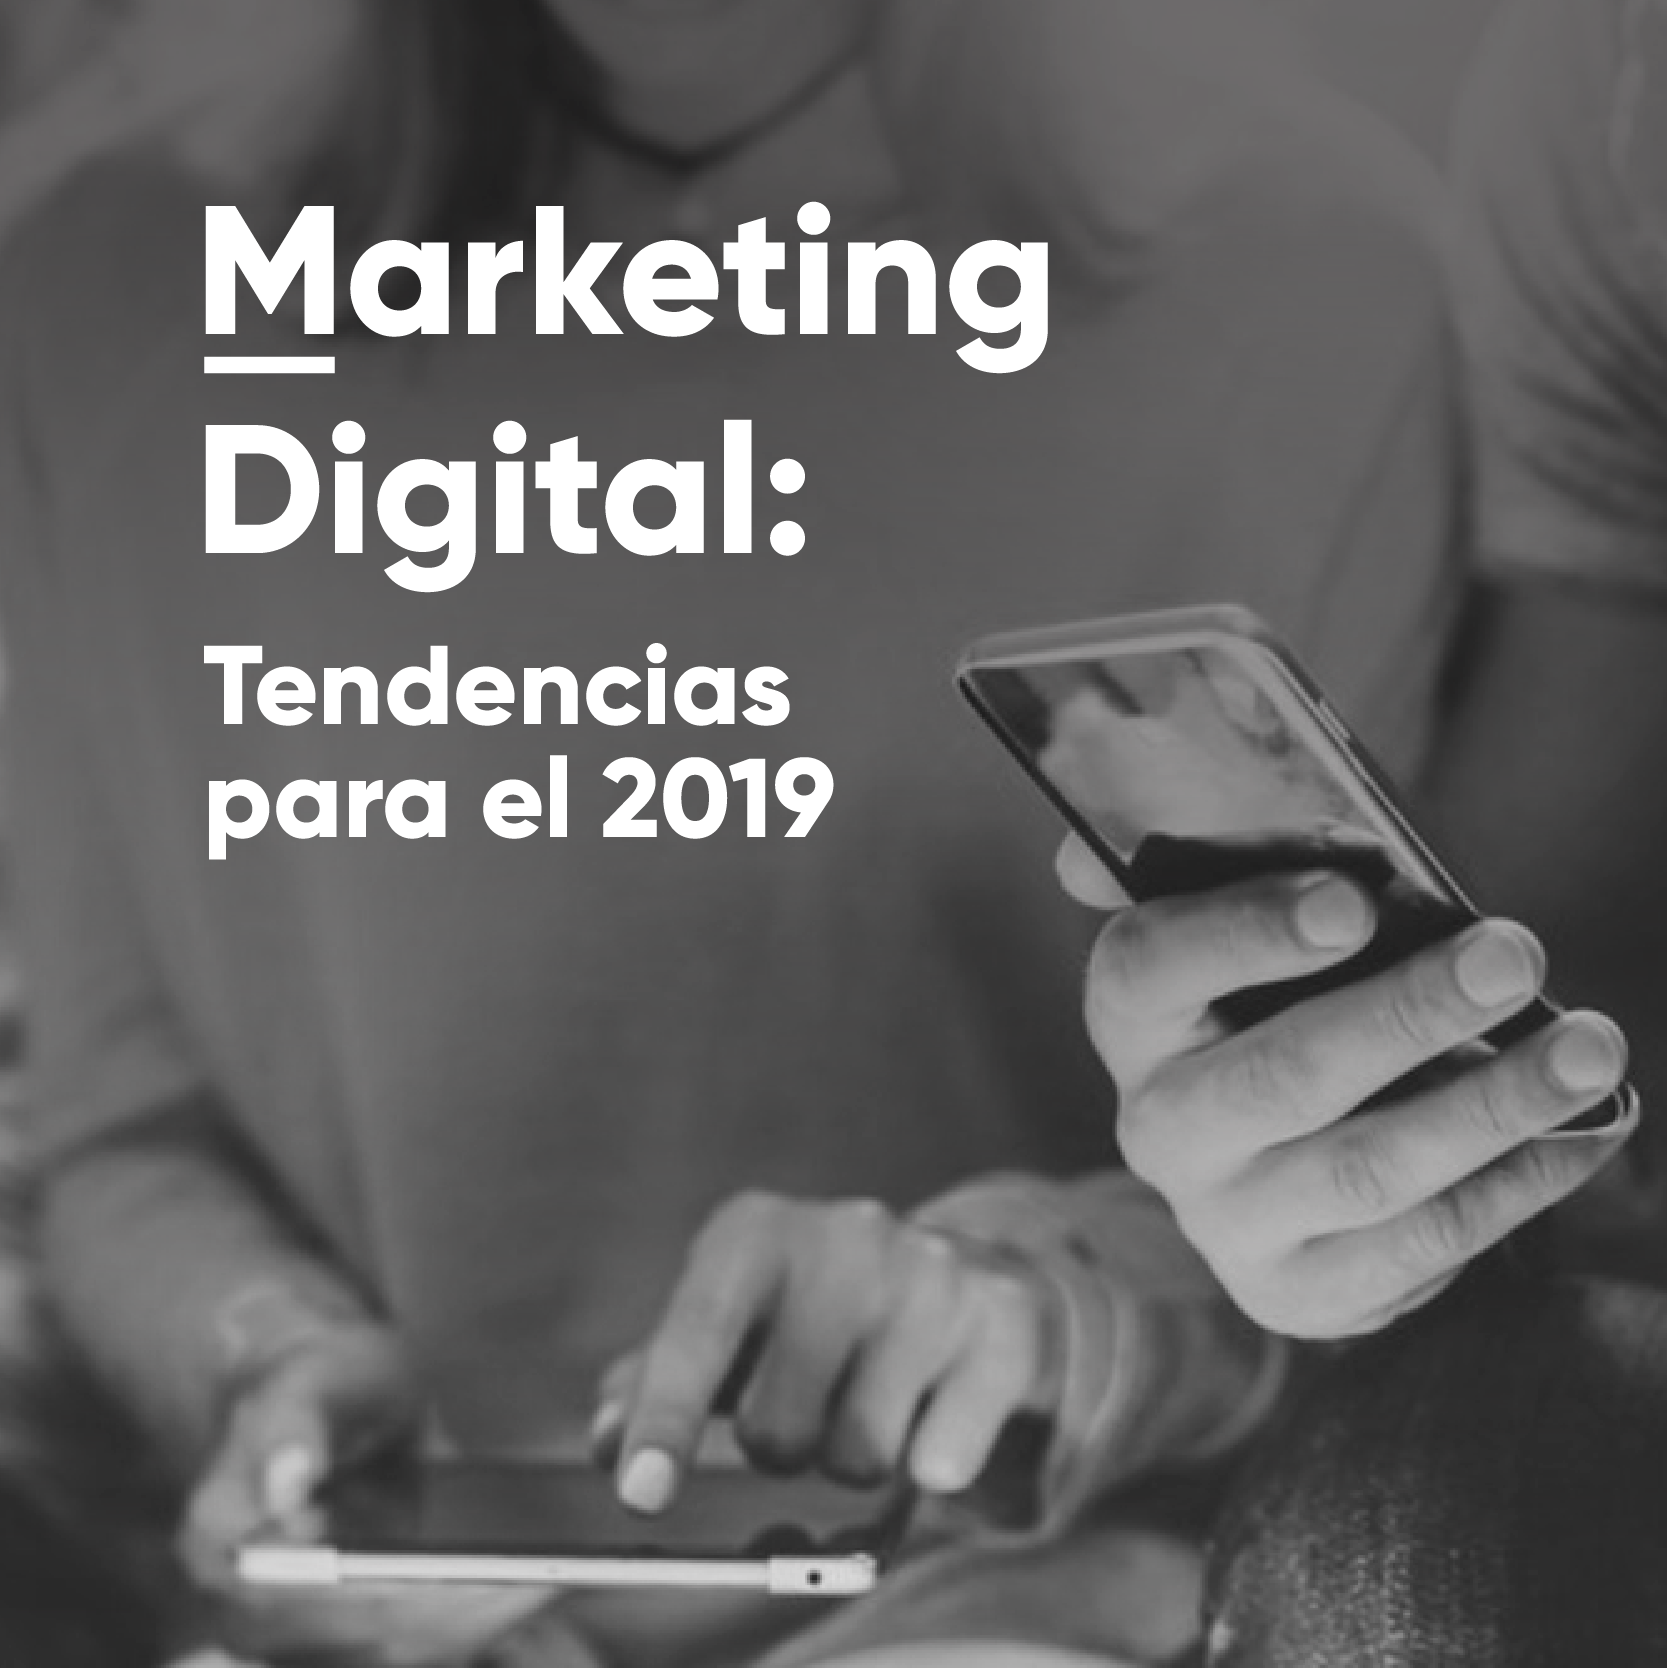 Marketing digital: Tendencias para el 2019